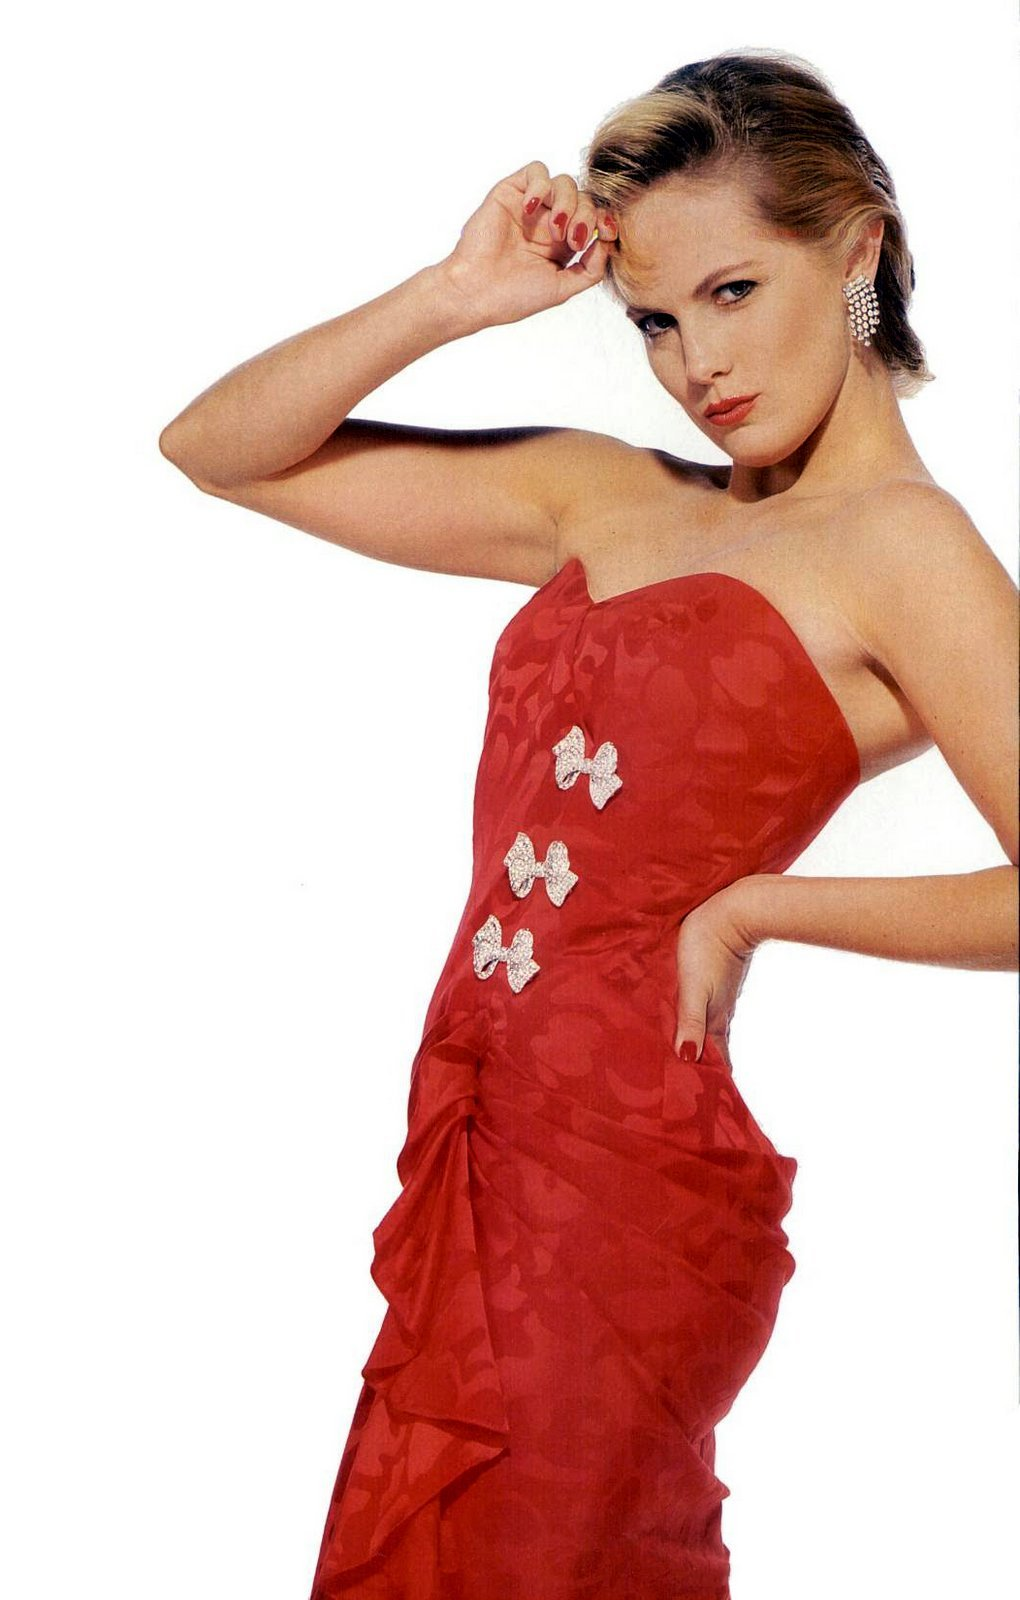 Vintage prom dresses from 1988 (2)